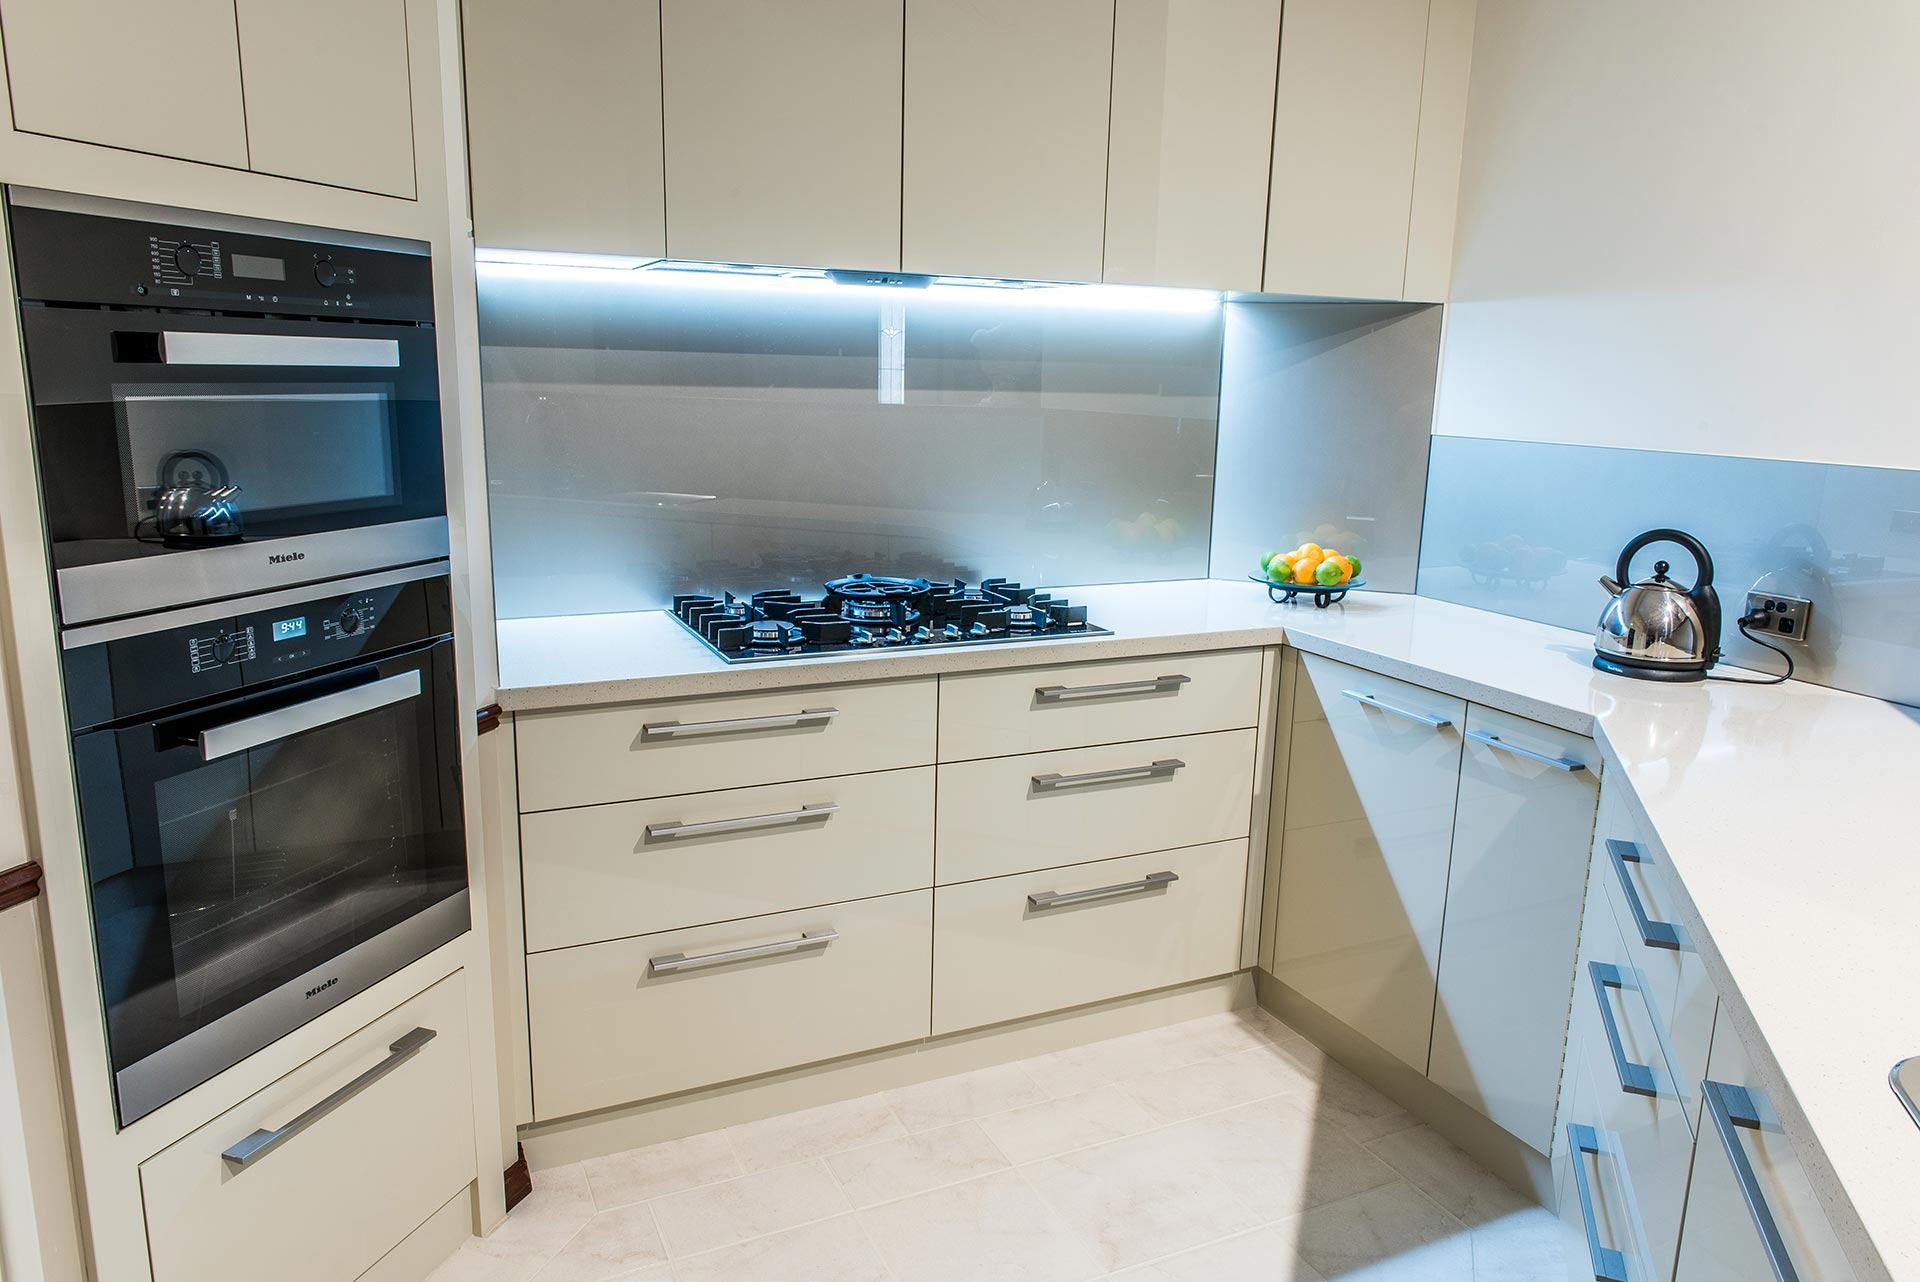 Stainless Steel Splashback Kitchen Bathroom Splashbacks Renovations Perth Alltech Cabinets